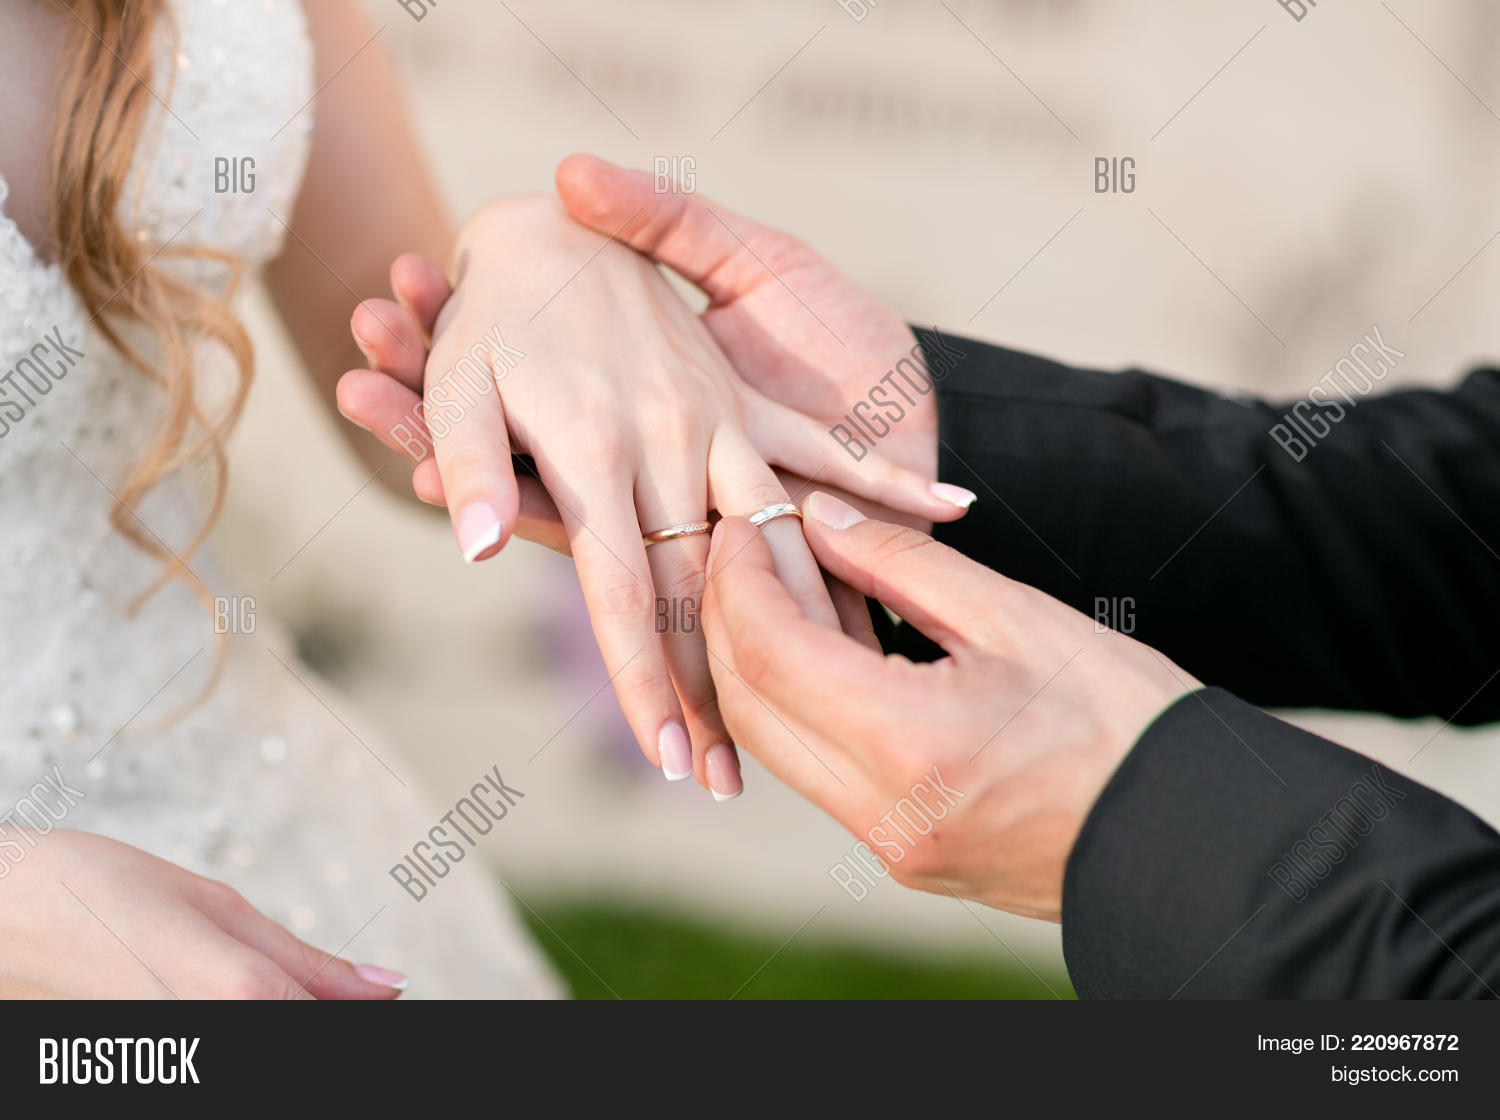 Wedding Rings Hands Image & Photo (Free Trial) | Bigstock